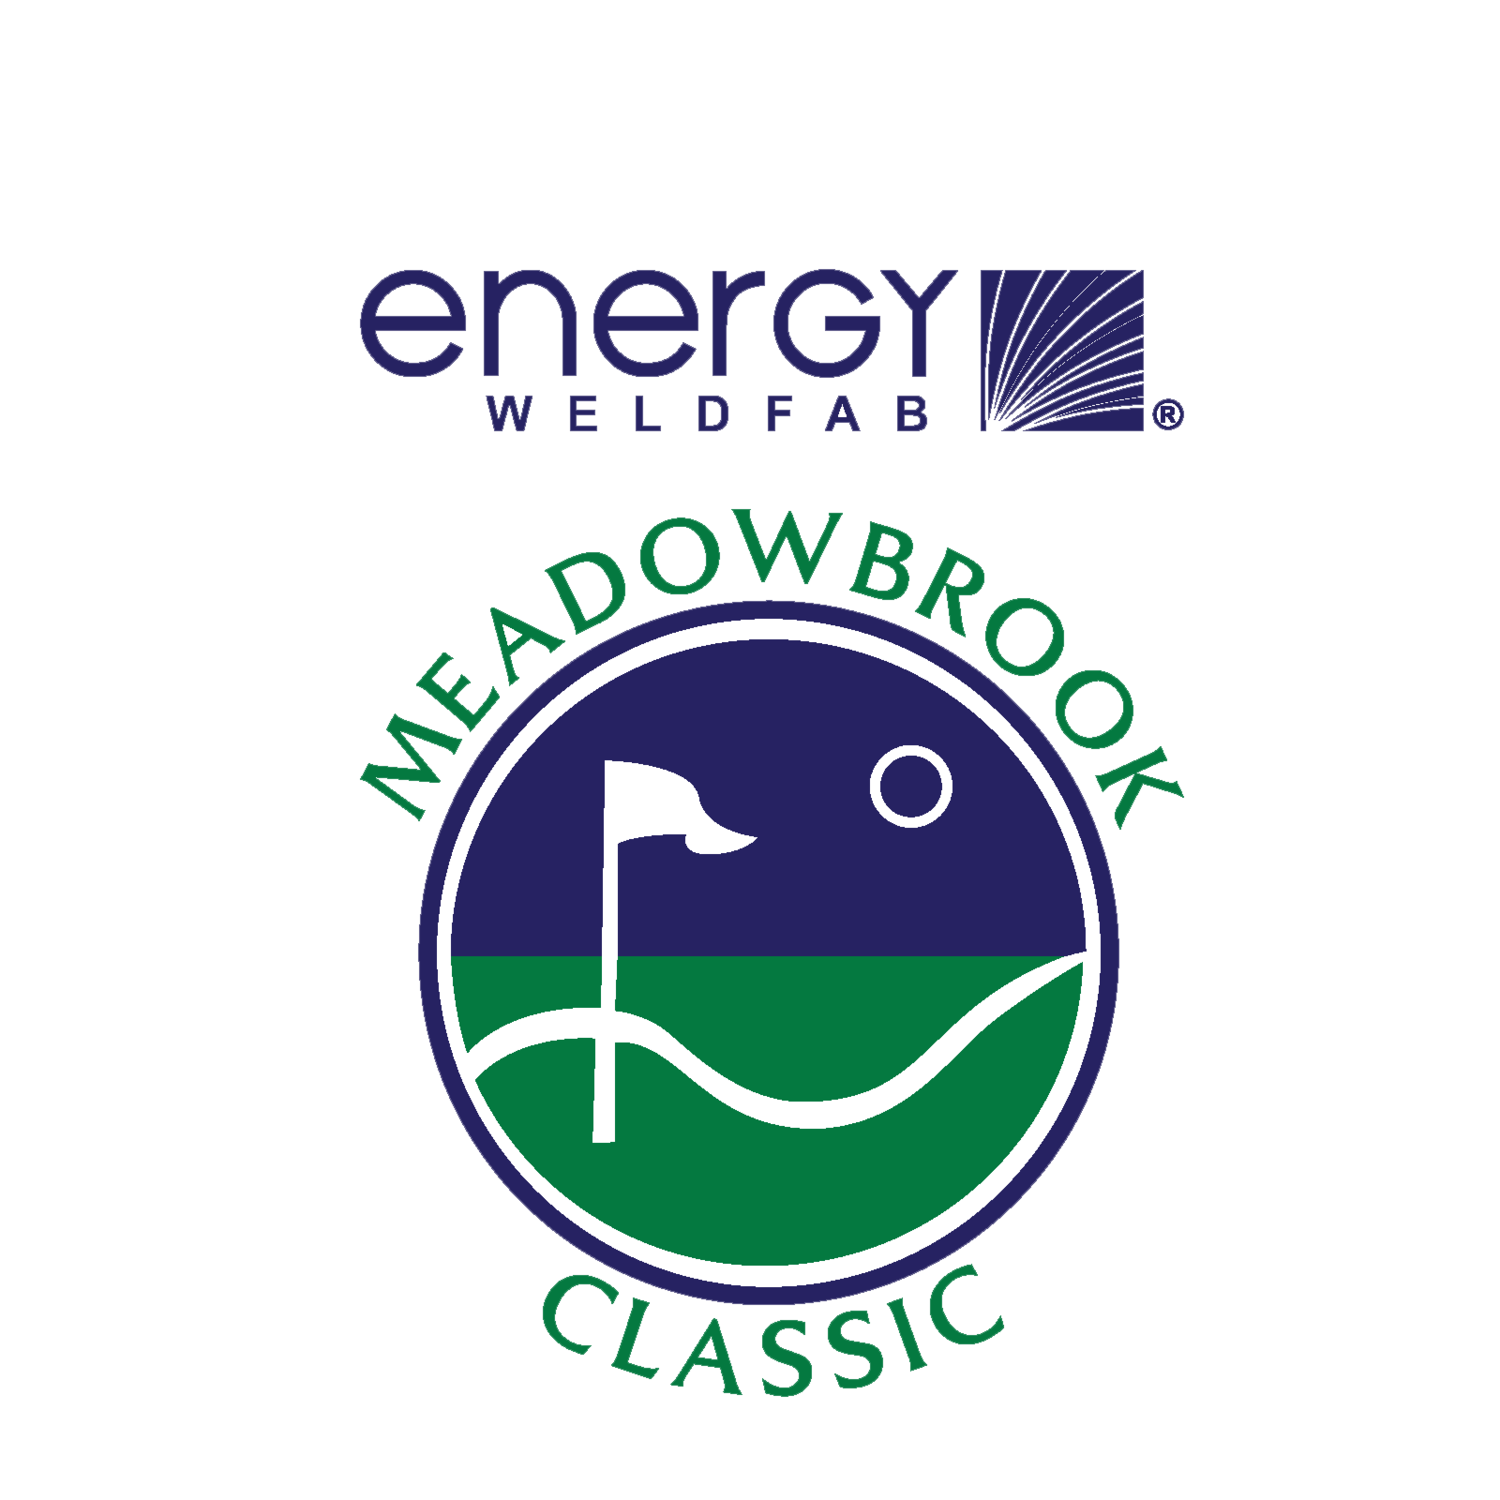 Energy Weldfab Meadowbrook Classic